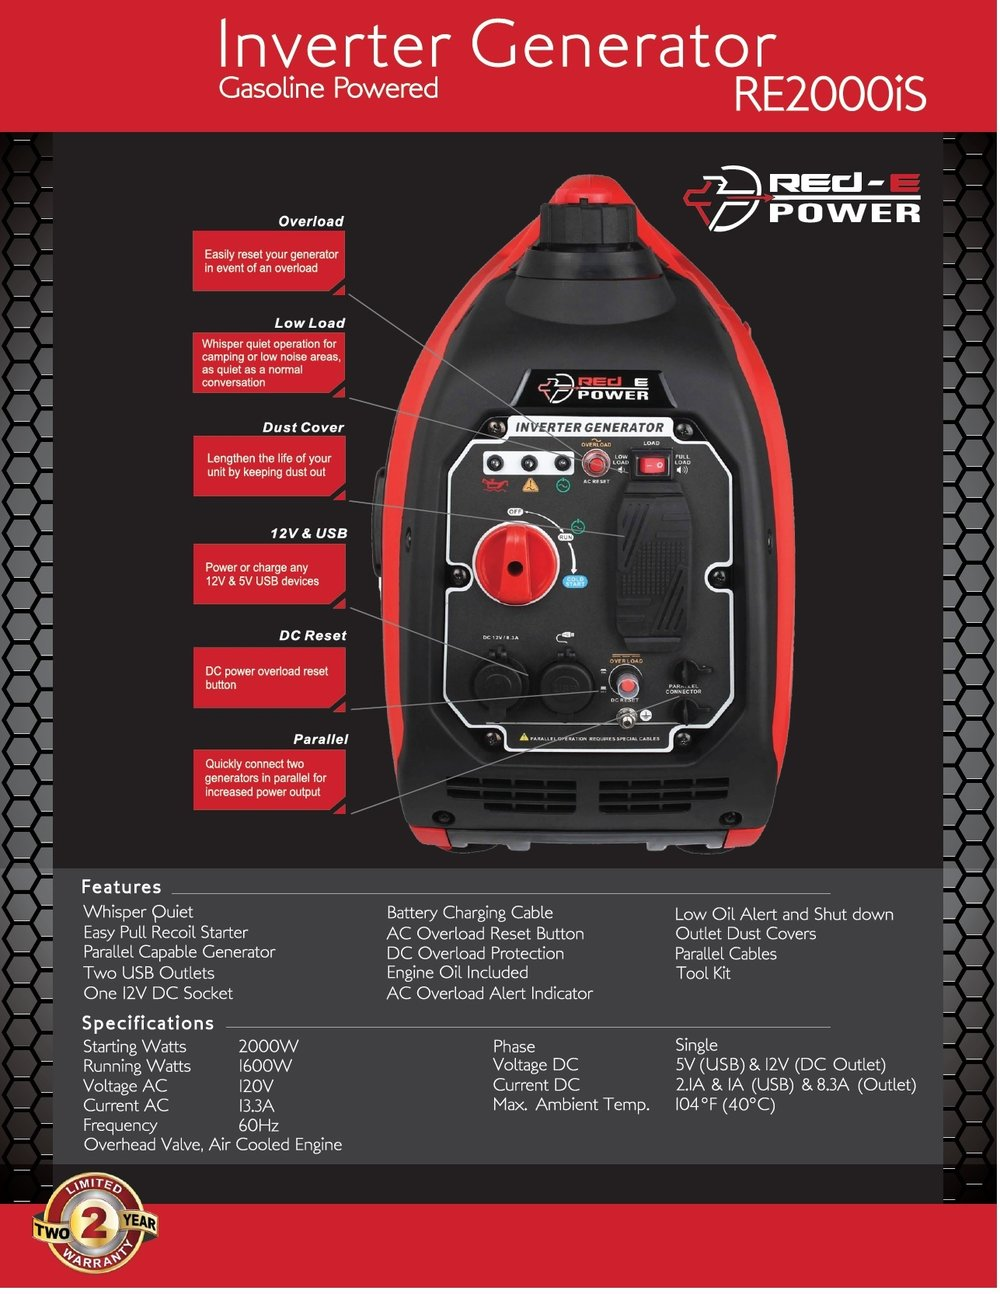 RED-E Power RE2000IS Generator ($899)